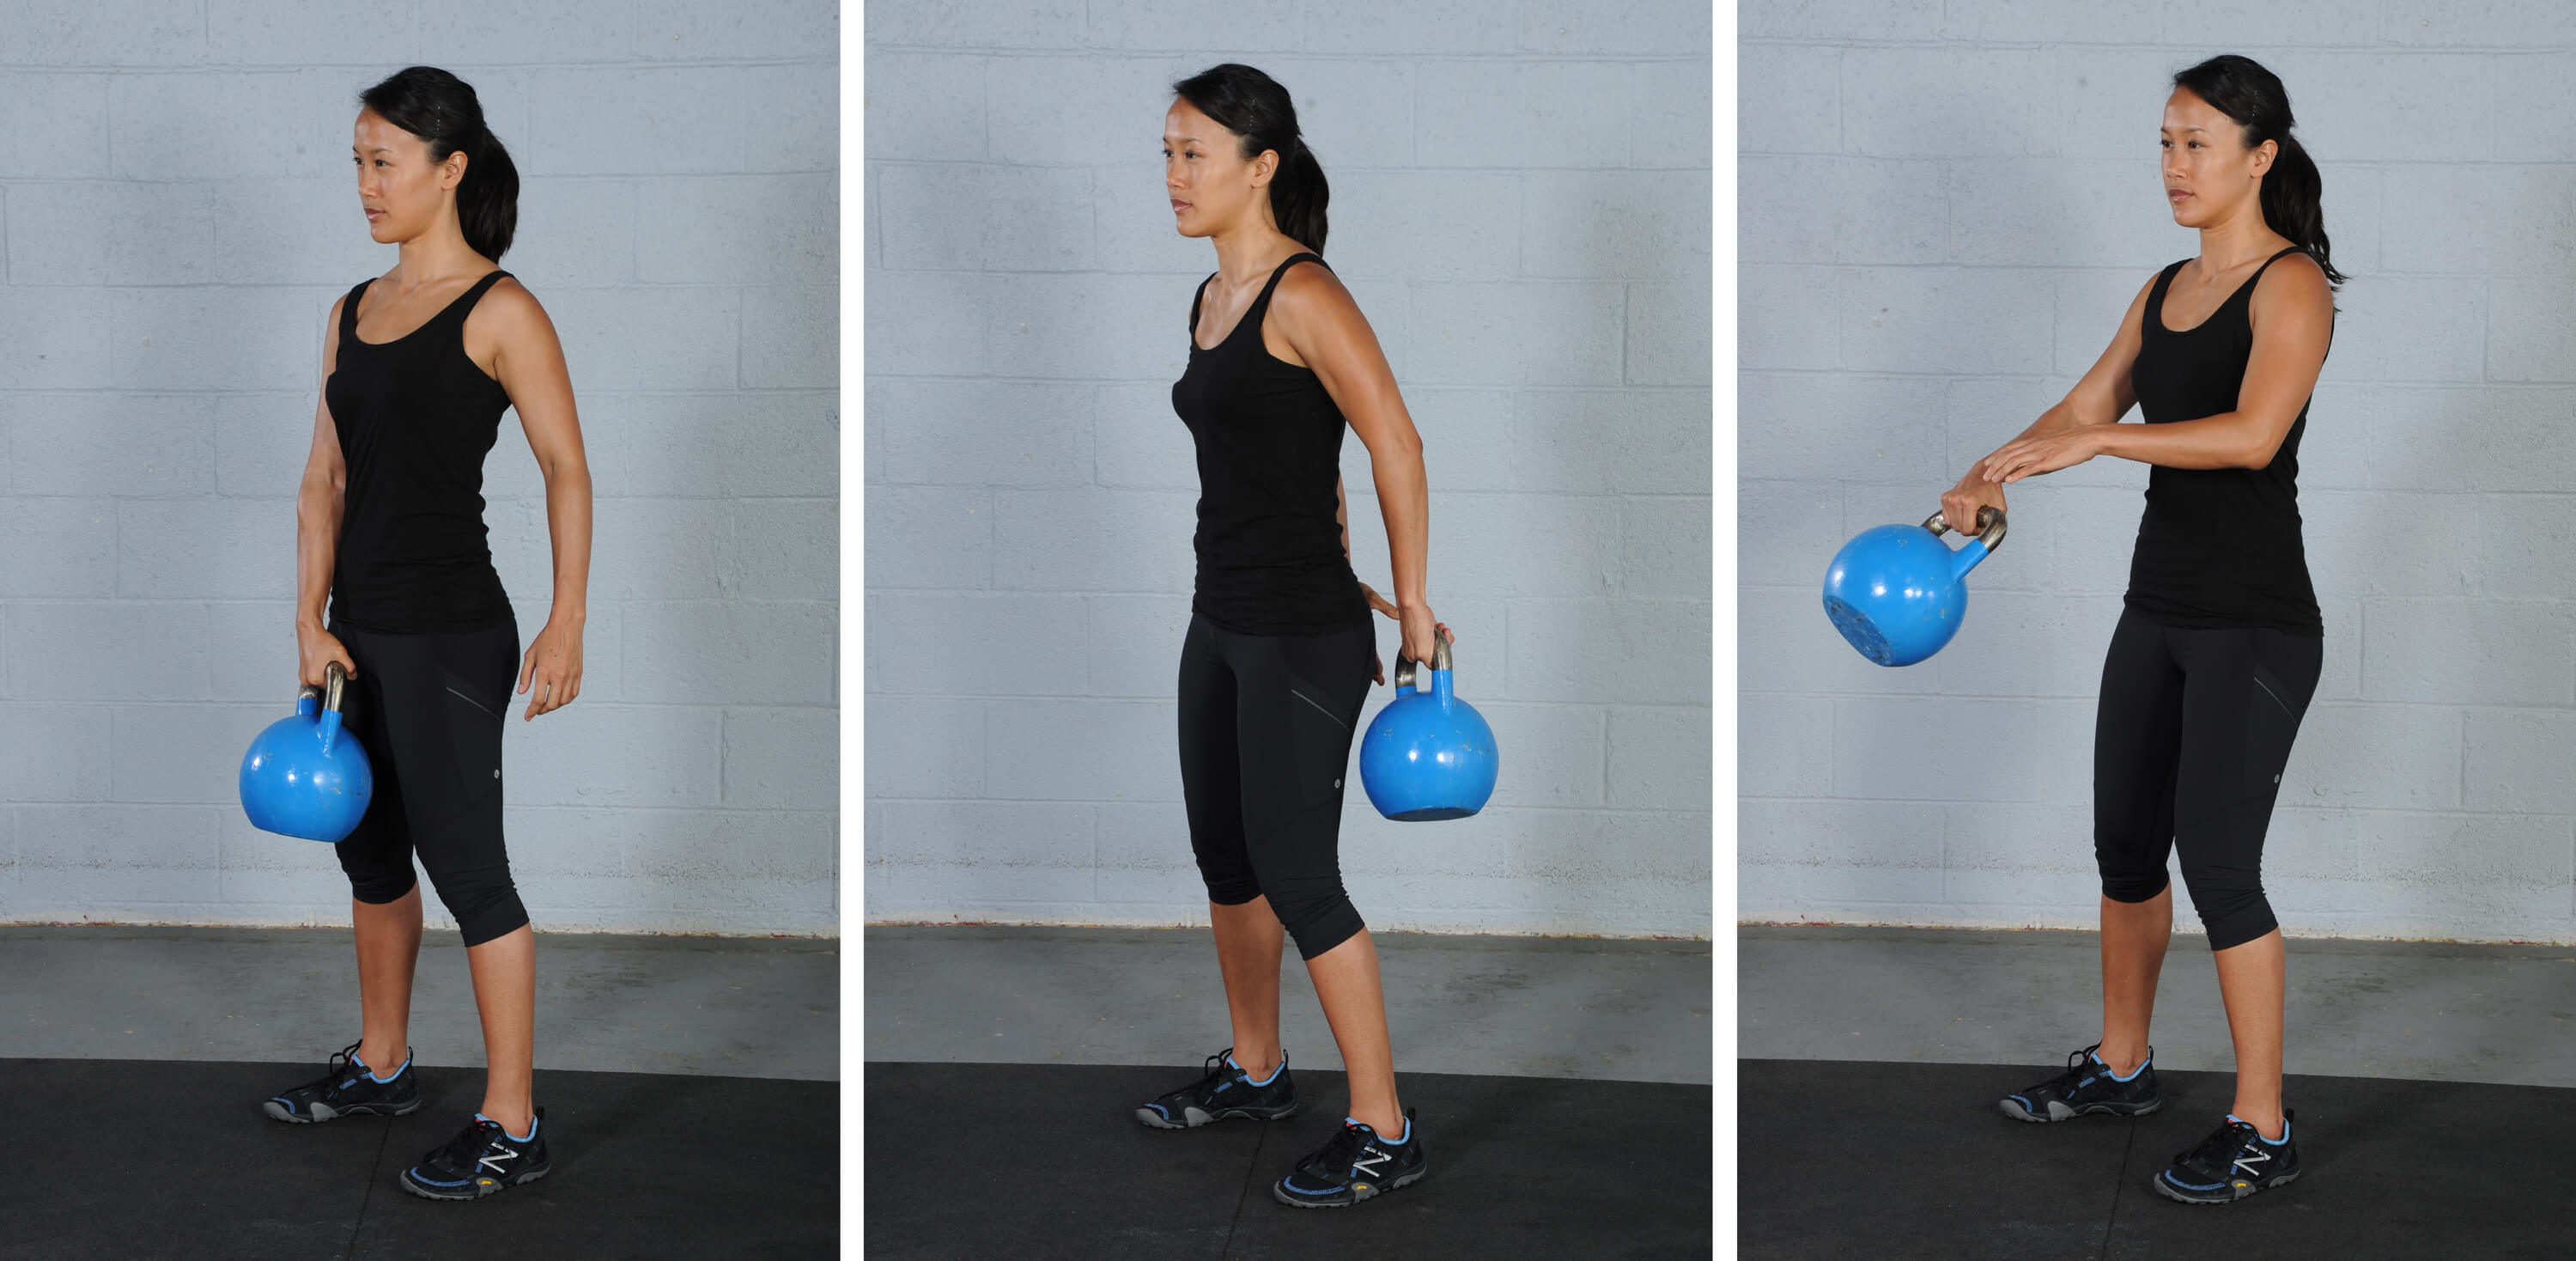 Around the body pass, kettlebell exercises for fat loss